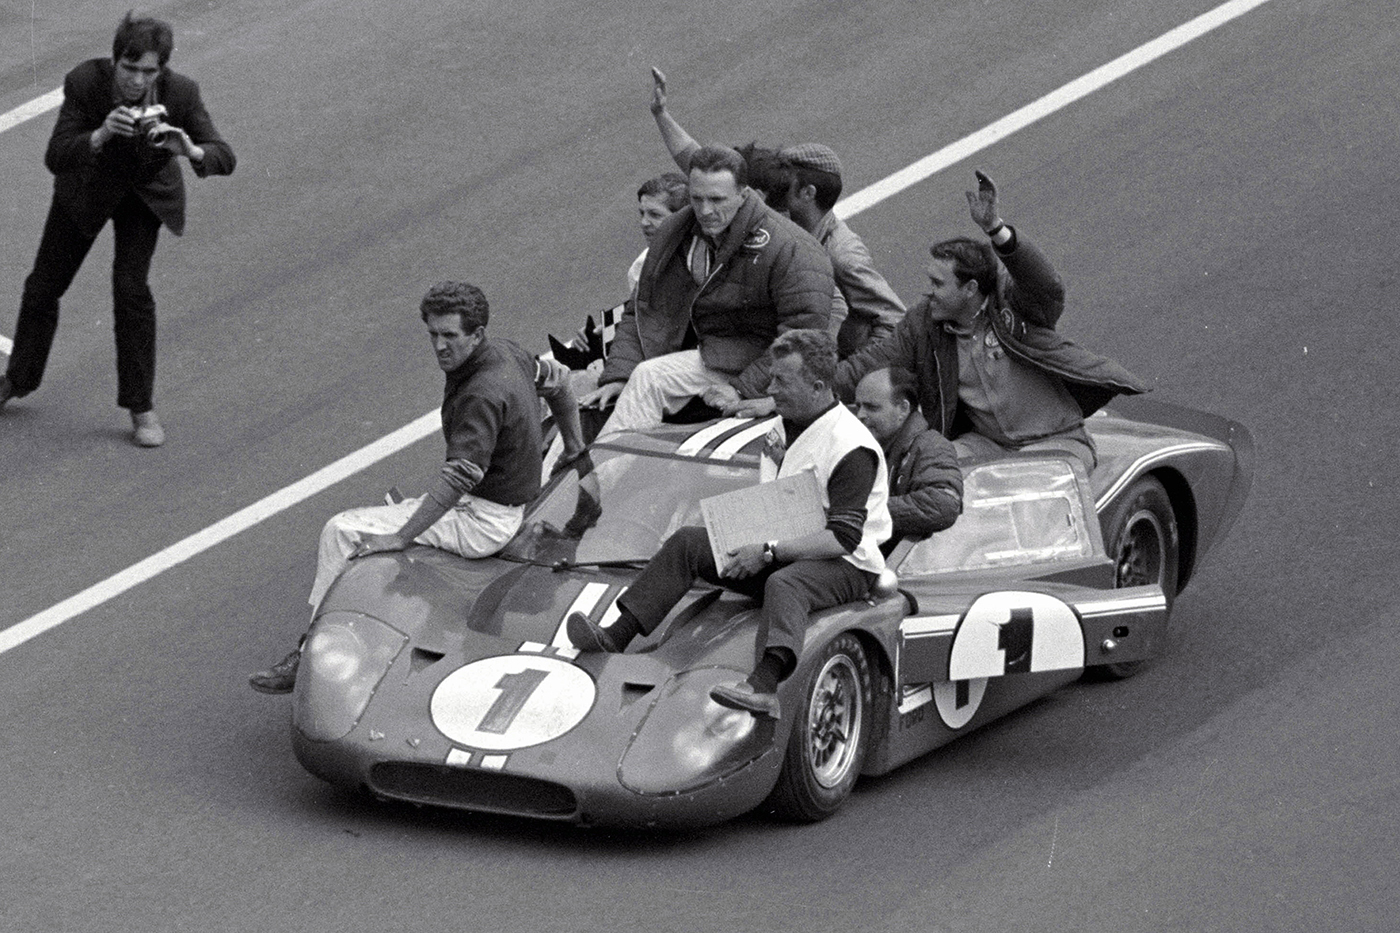 Gurney and Foyt relive Ford '67 win